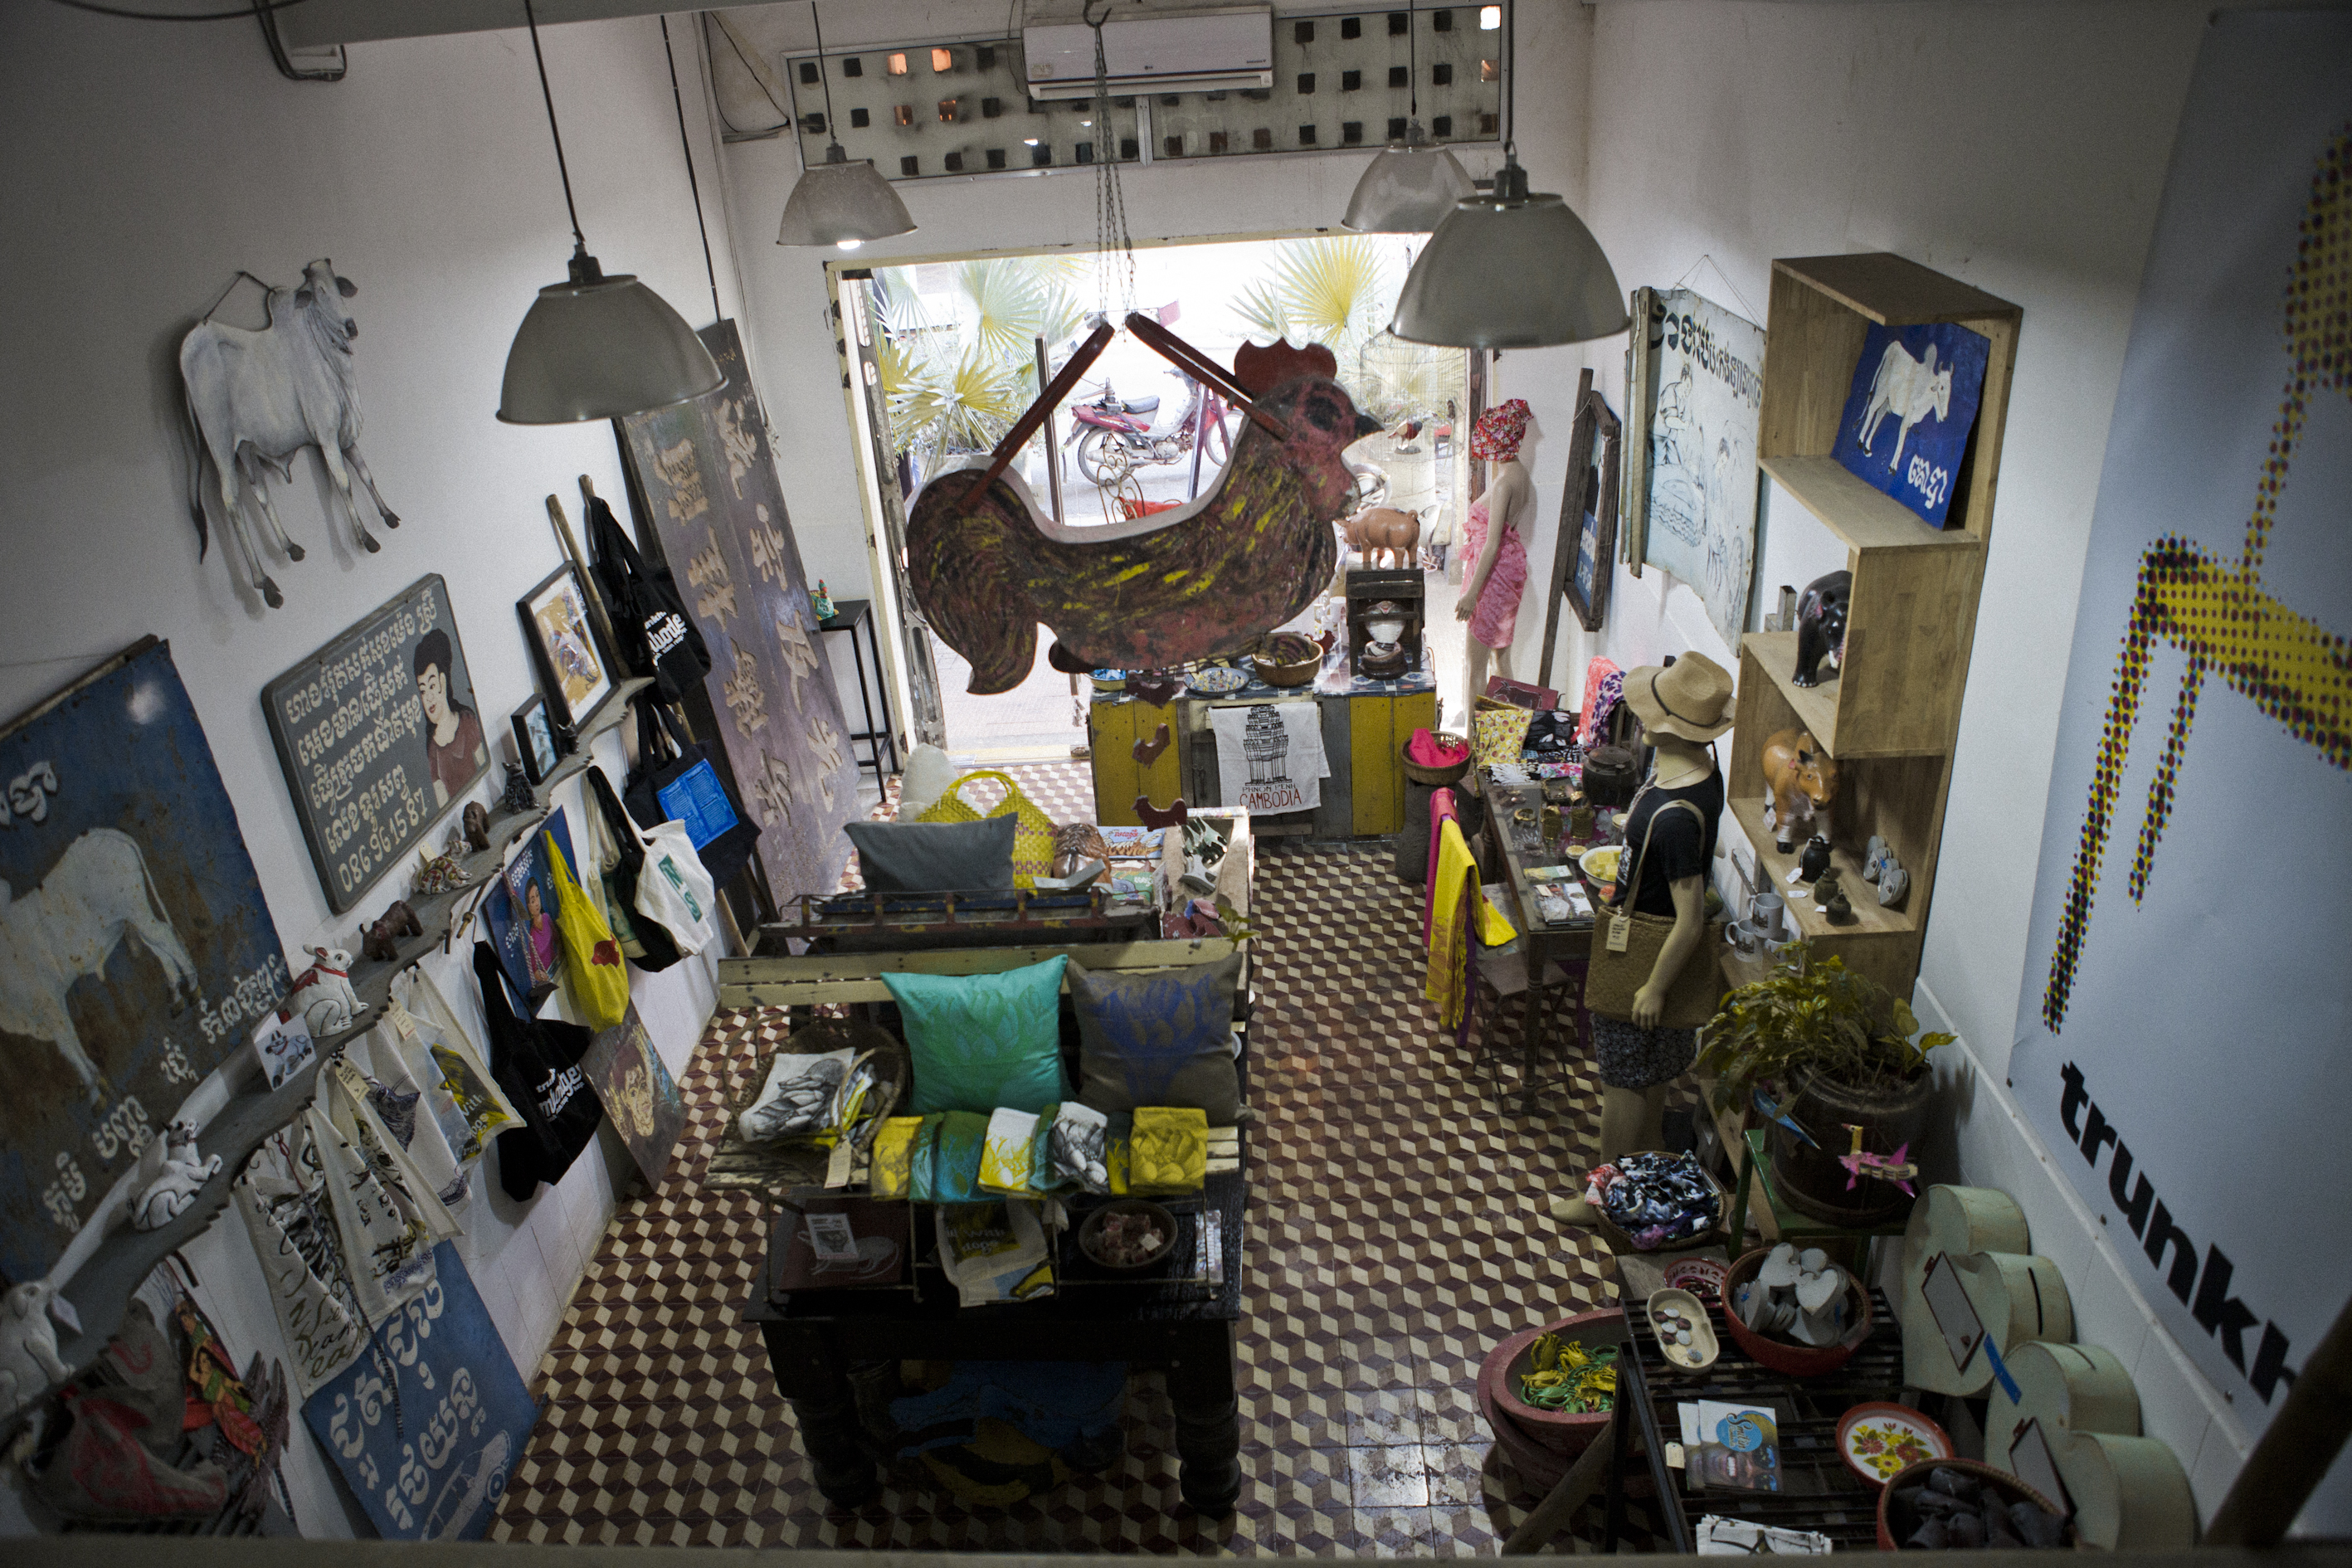 trunkh vintage collectibles concept store Phnom Penh Cambodia Asia Antiques Buying Tours with The Antiques Diva